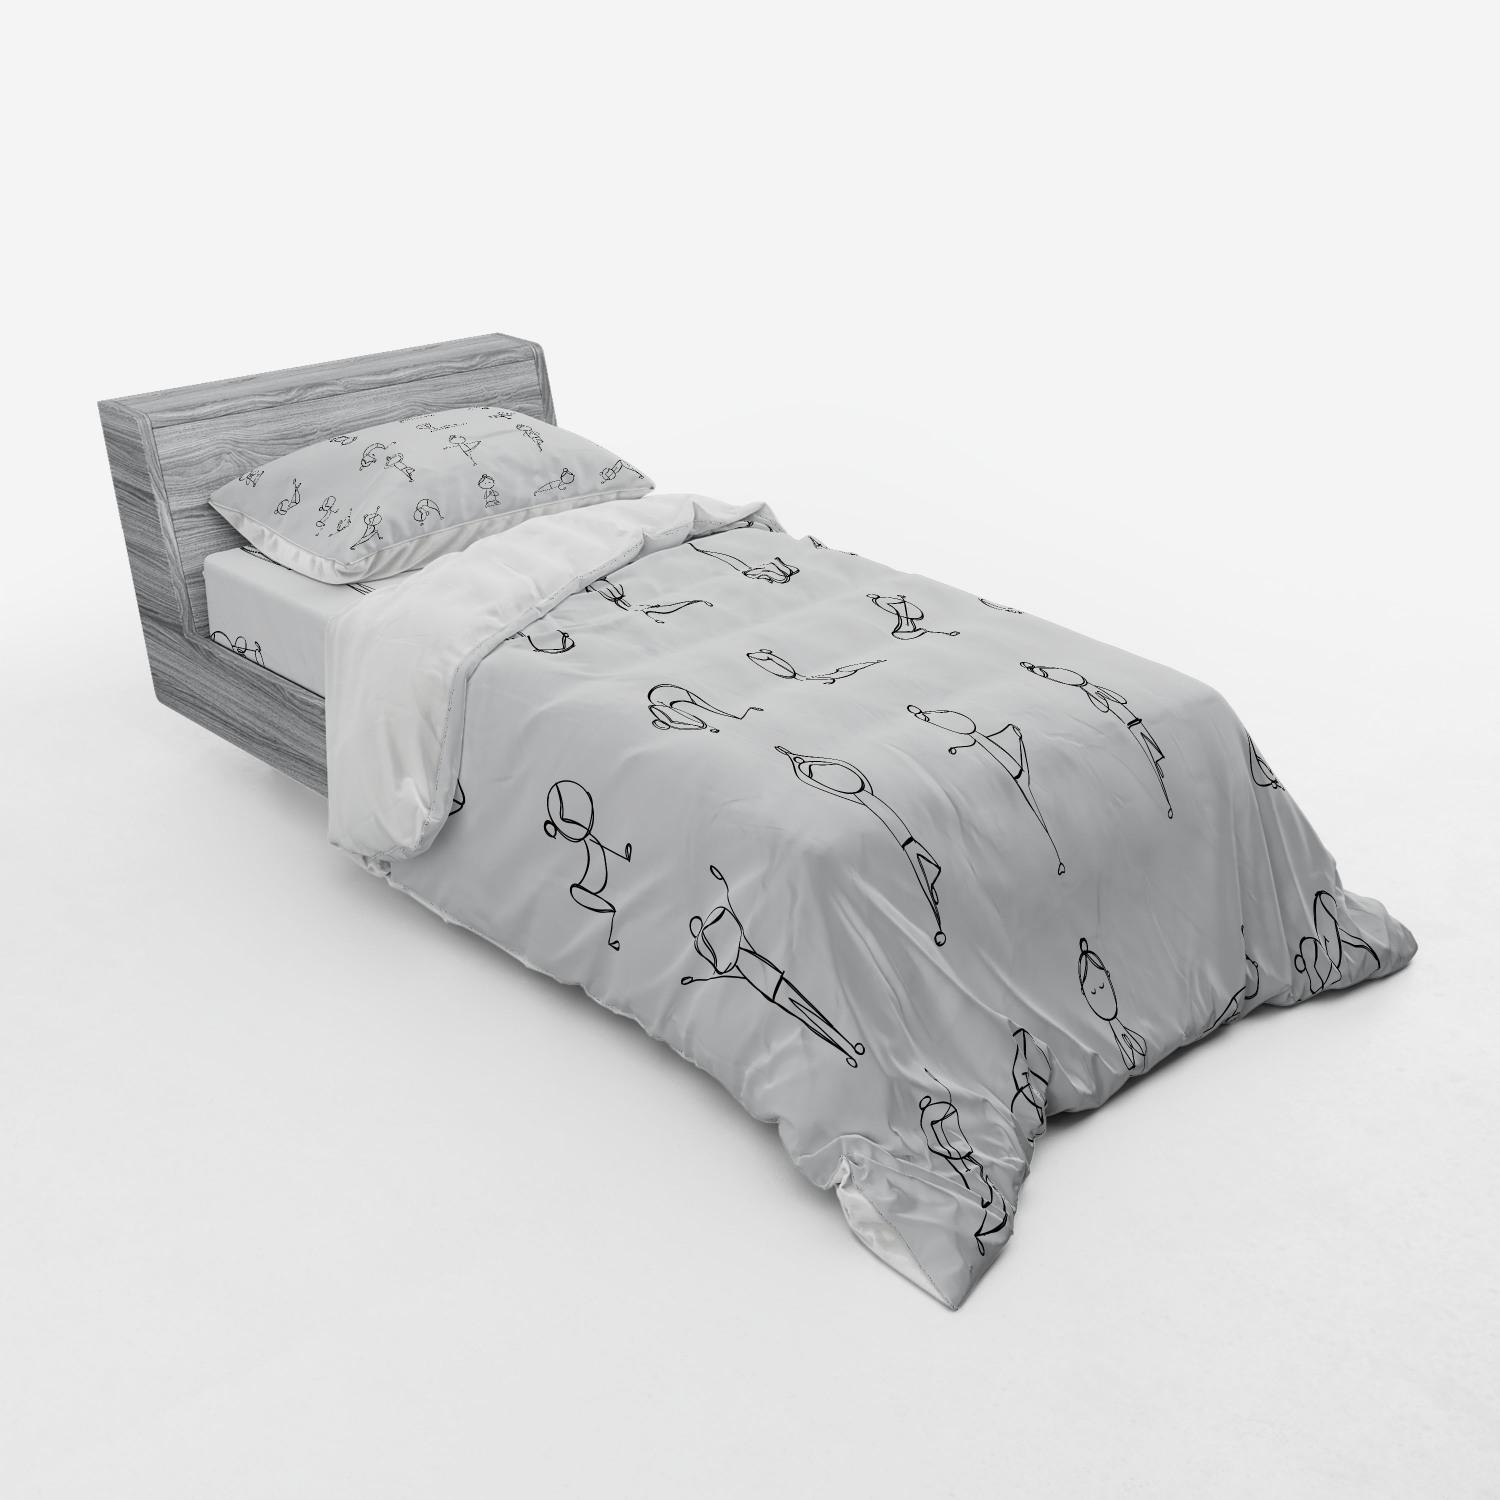 thumbnail 193 - Ambesonne Black White Art Bedding Set Duvet Cover Sham Fitted Sheet in 3 Sizes